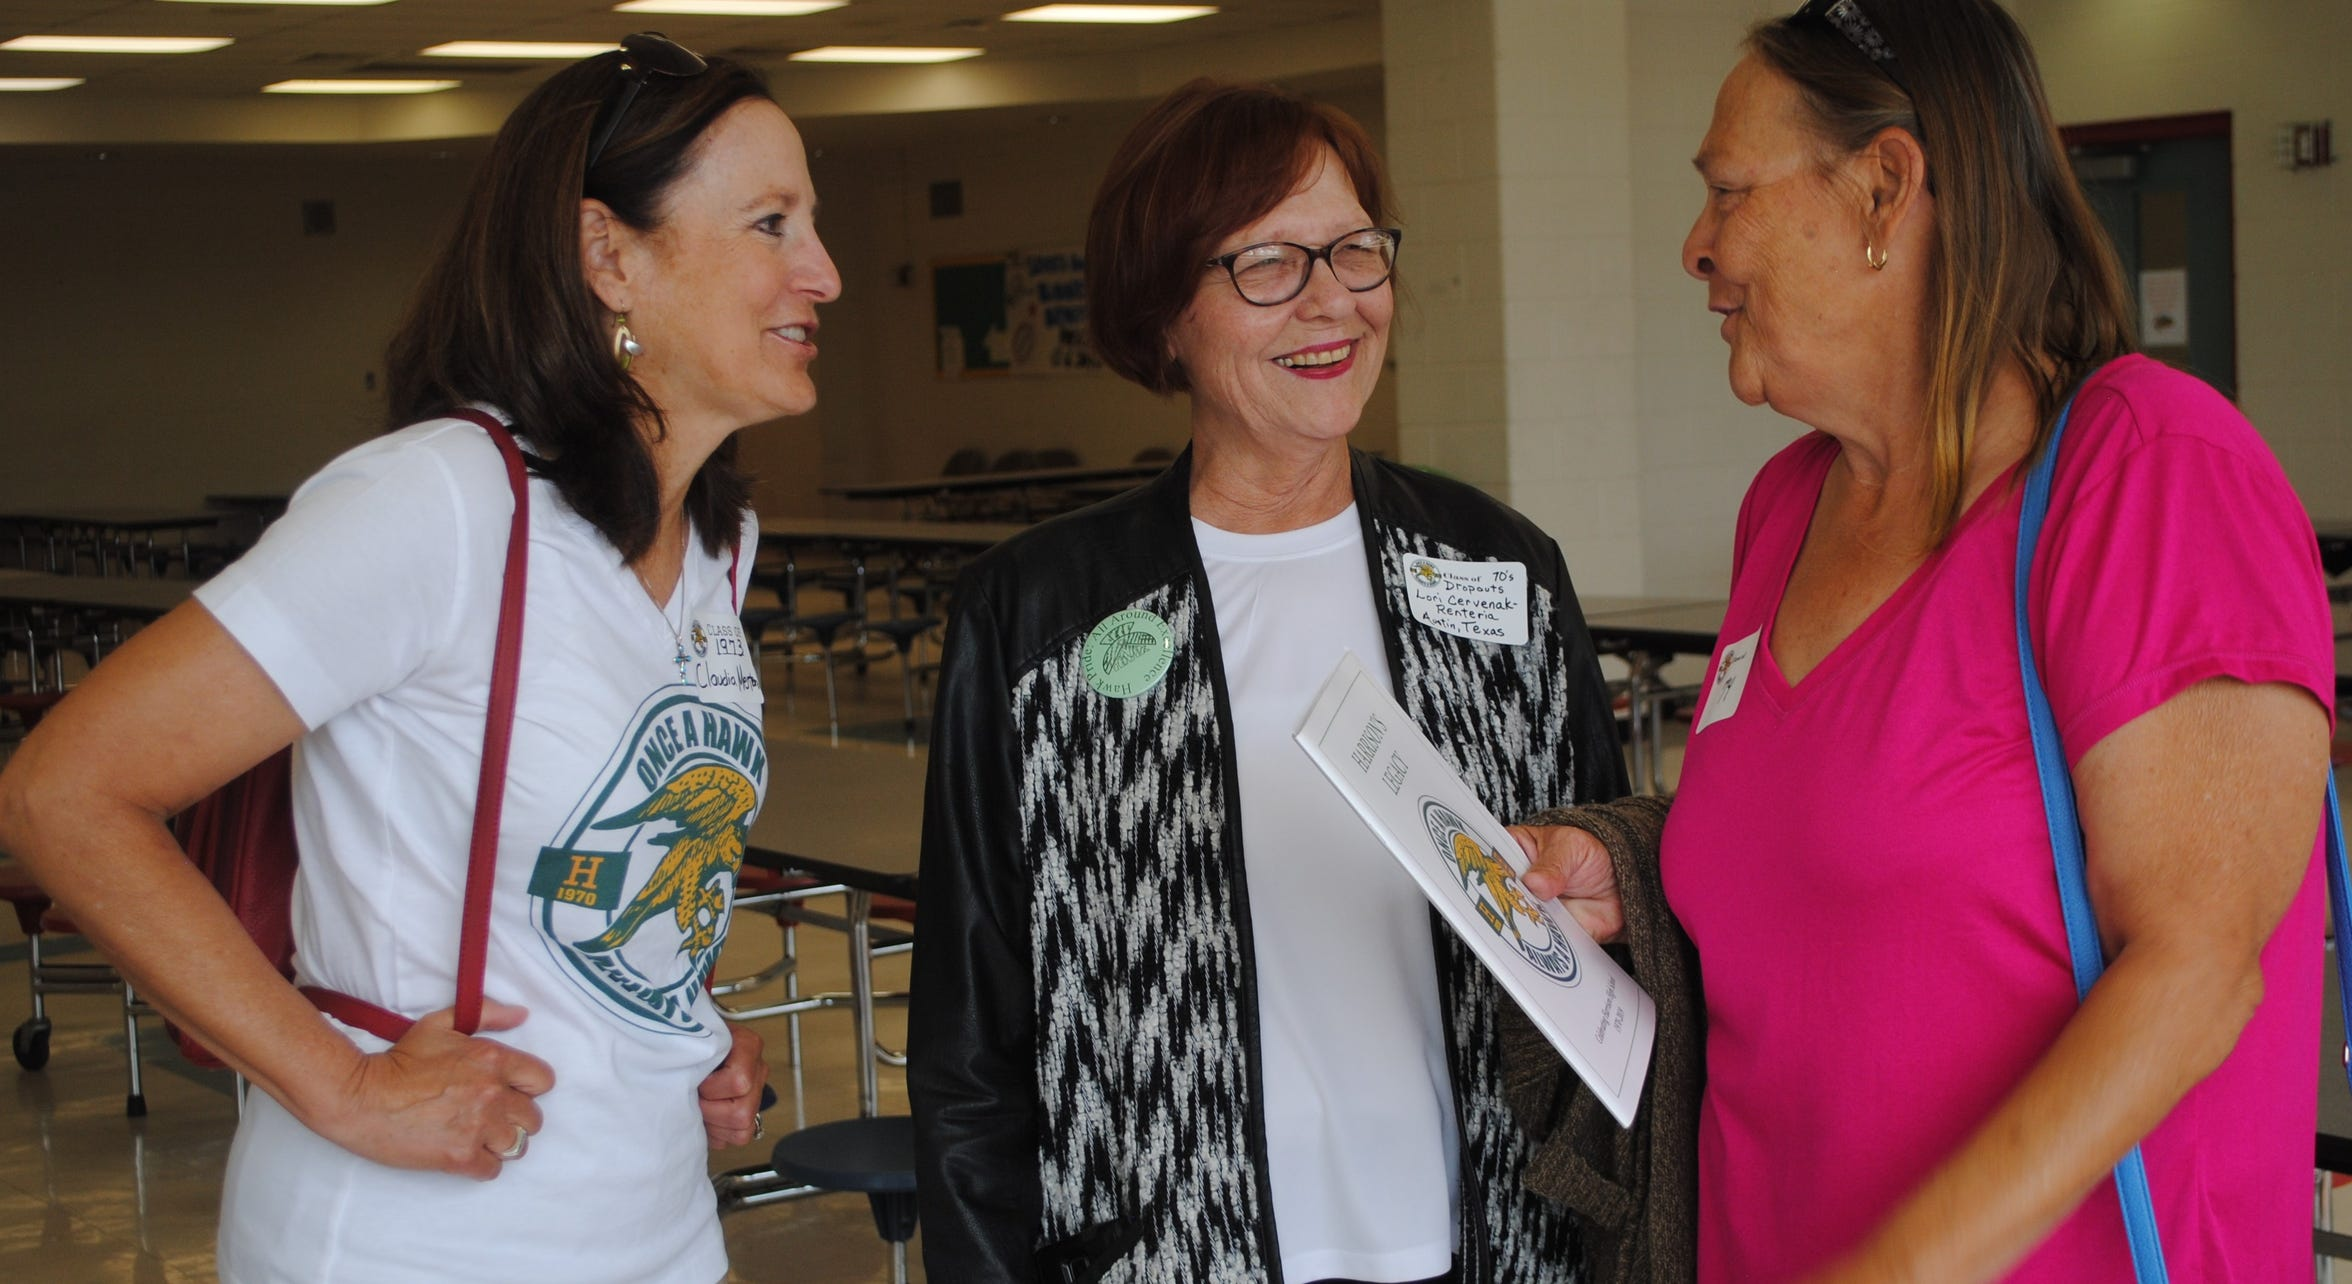 Claudia Menton, left, reliving high school with two of her former classmates during a final farewell event at Harrison on June 1.